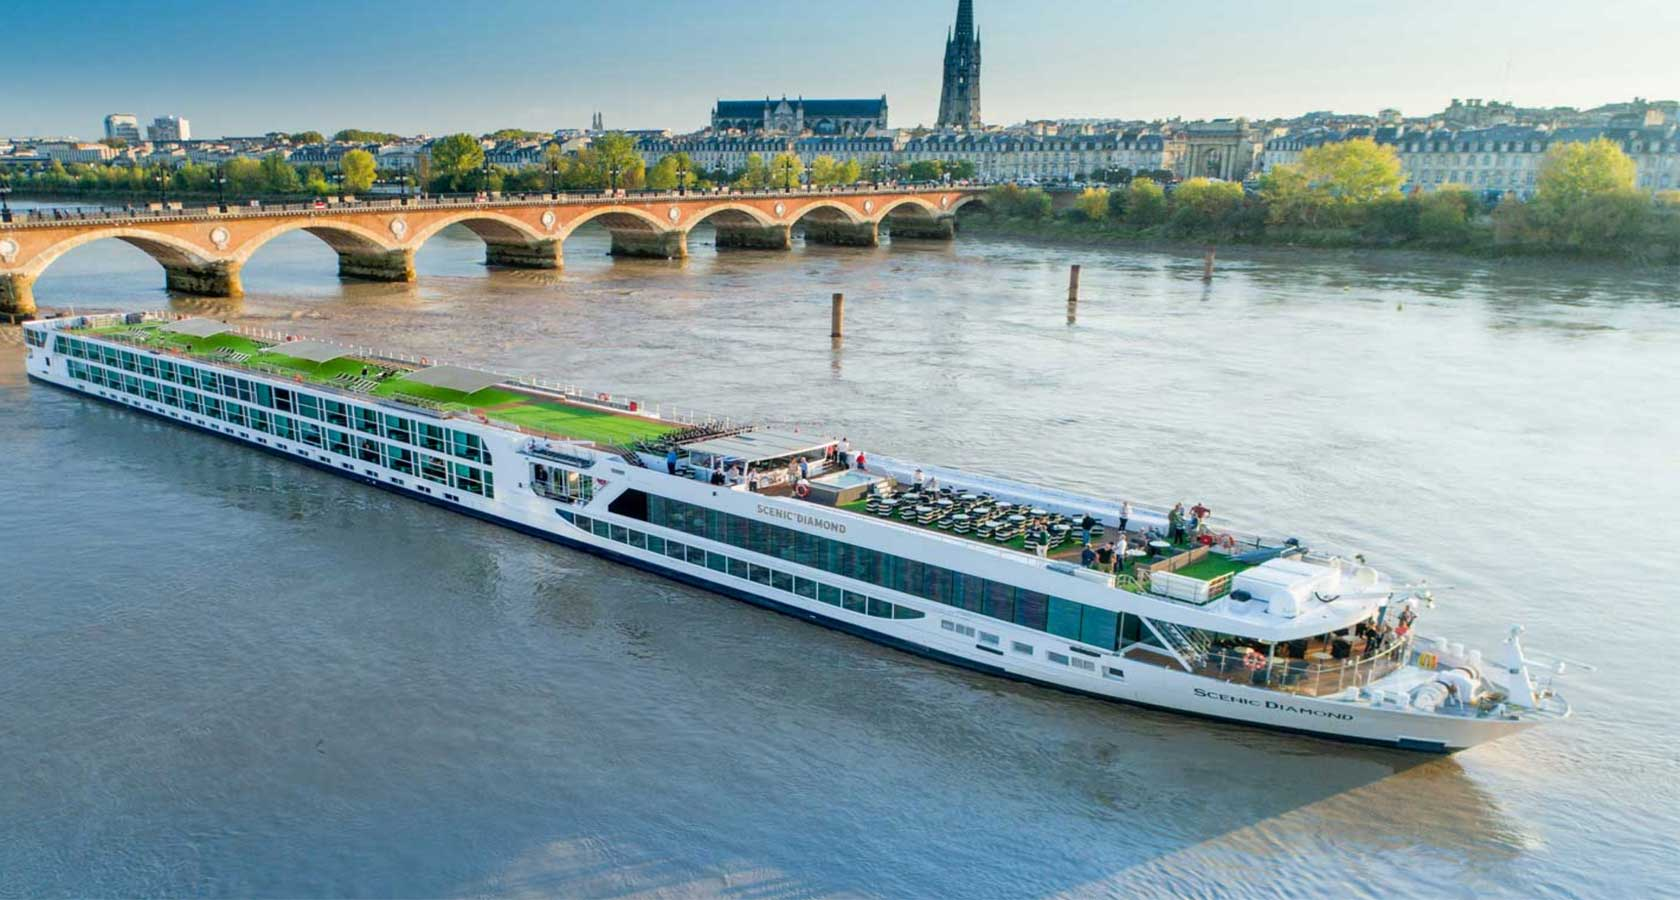 LUXURY RIVER HONEYMOON CRUISES